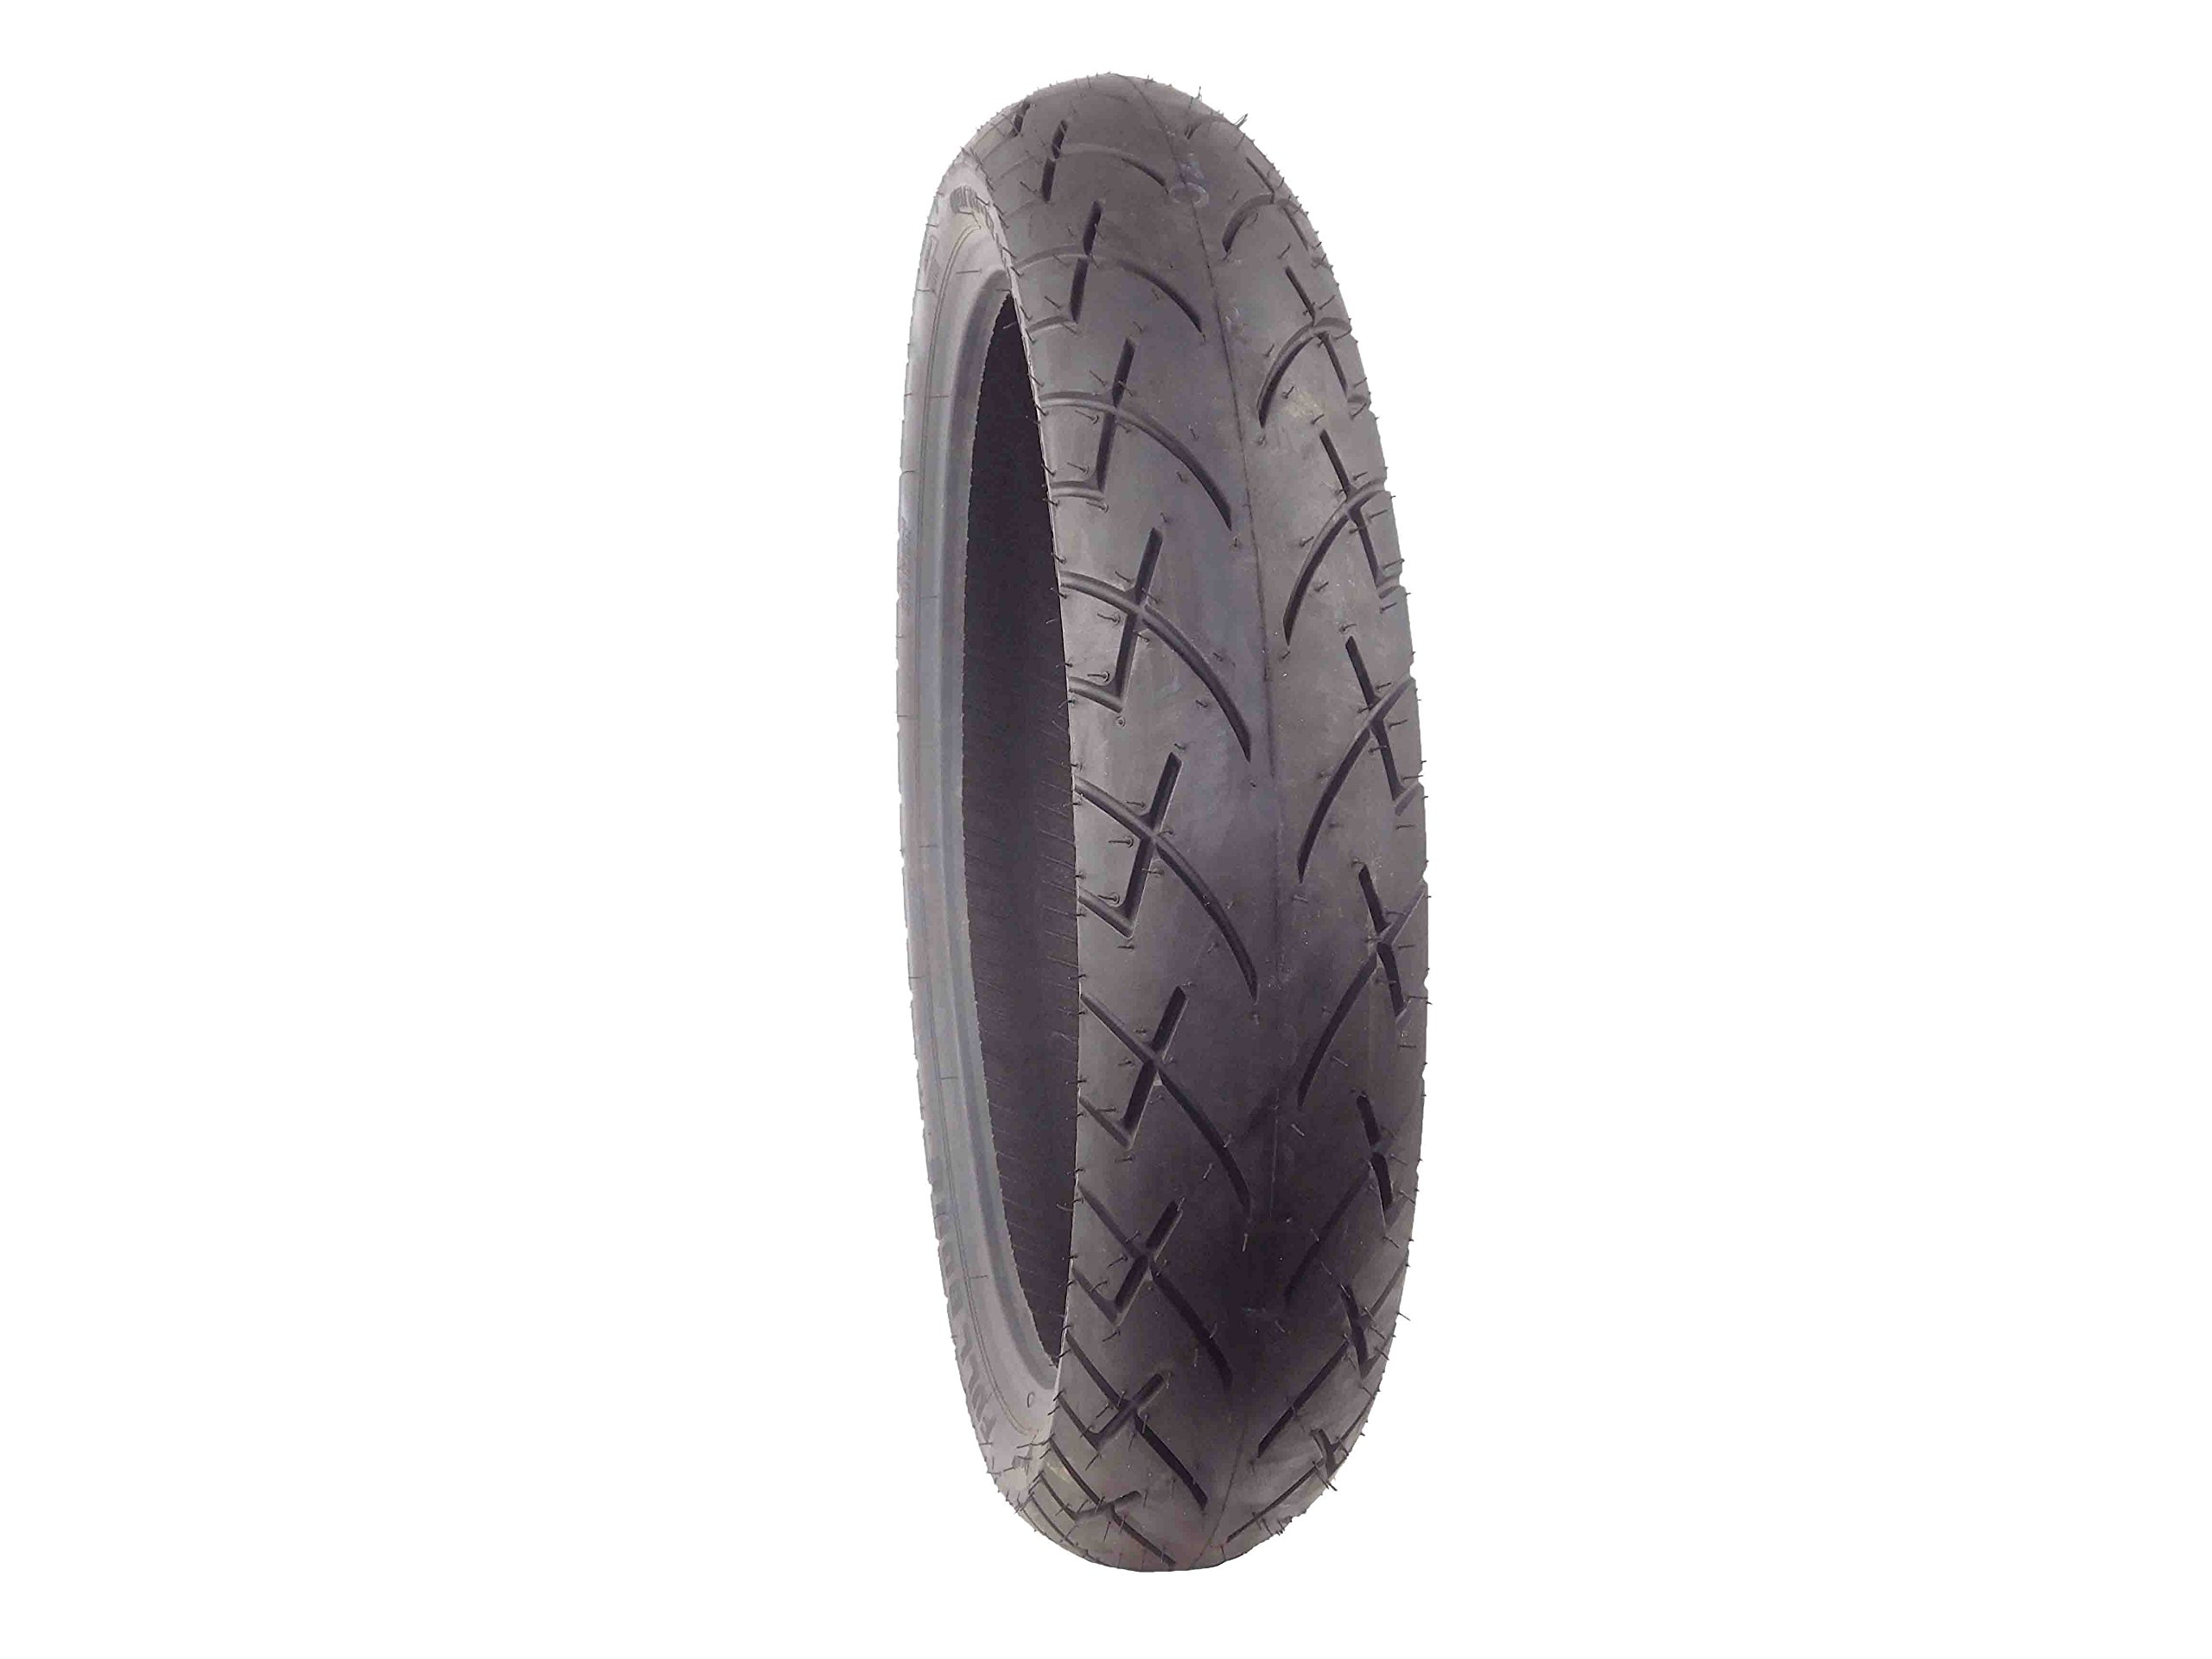 Full Bore M-66 Tour King Cruiser Motorcycle Tire (110/70-17)